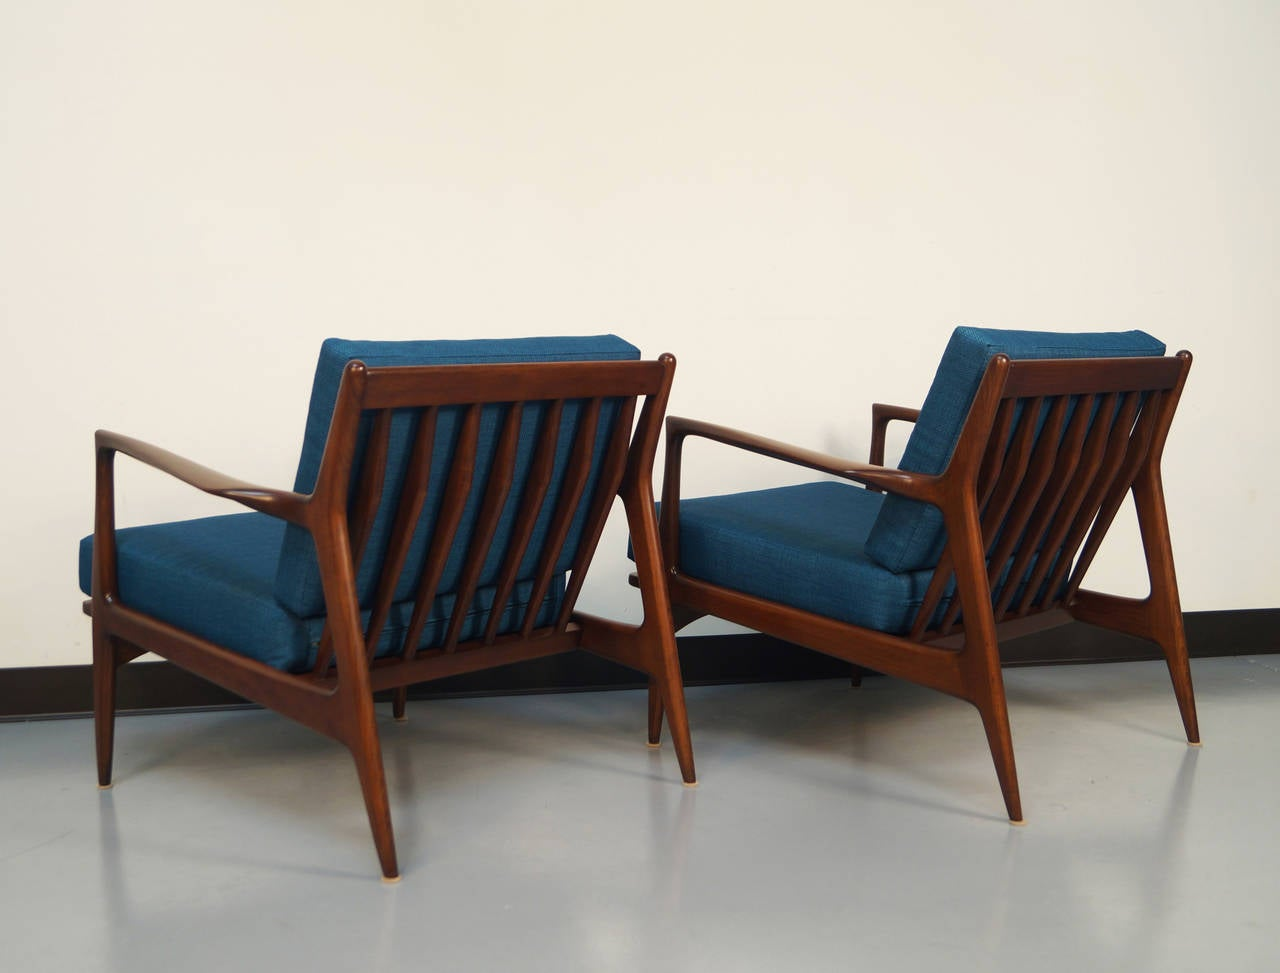 Danish modern lounge chairs by ib kofod larsen at 1stdibs for Modern lounge furniture